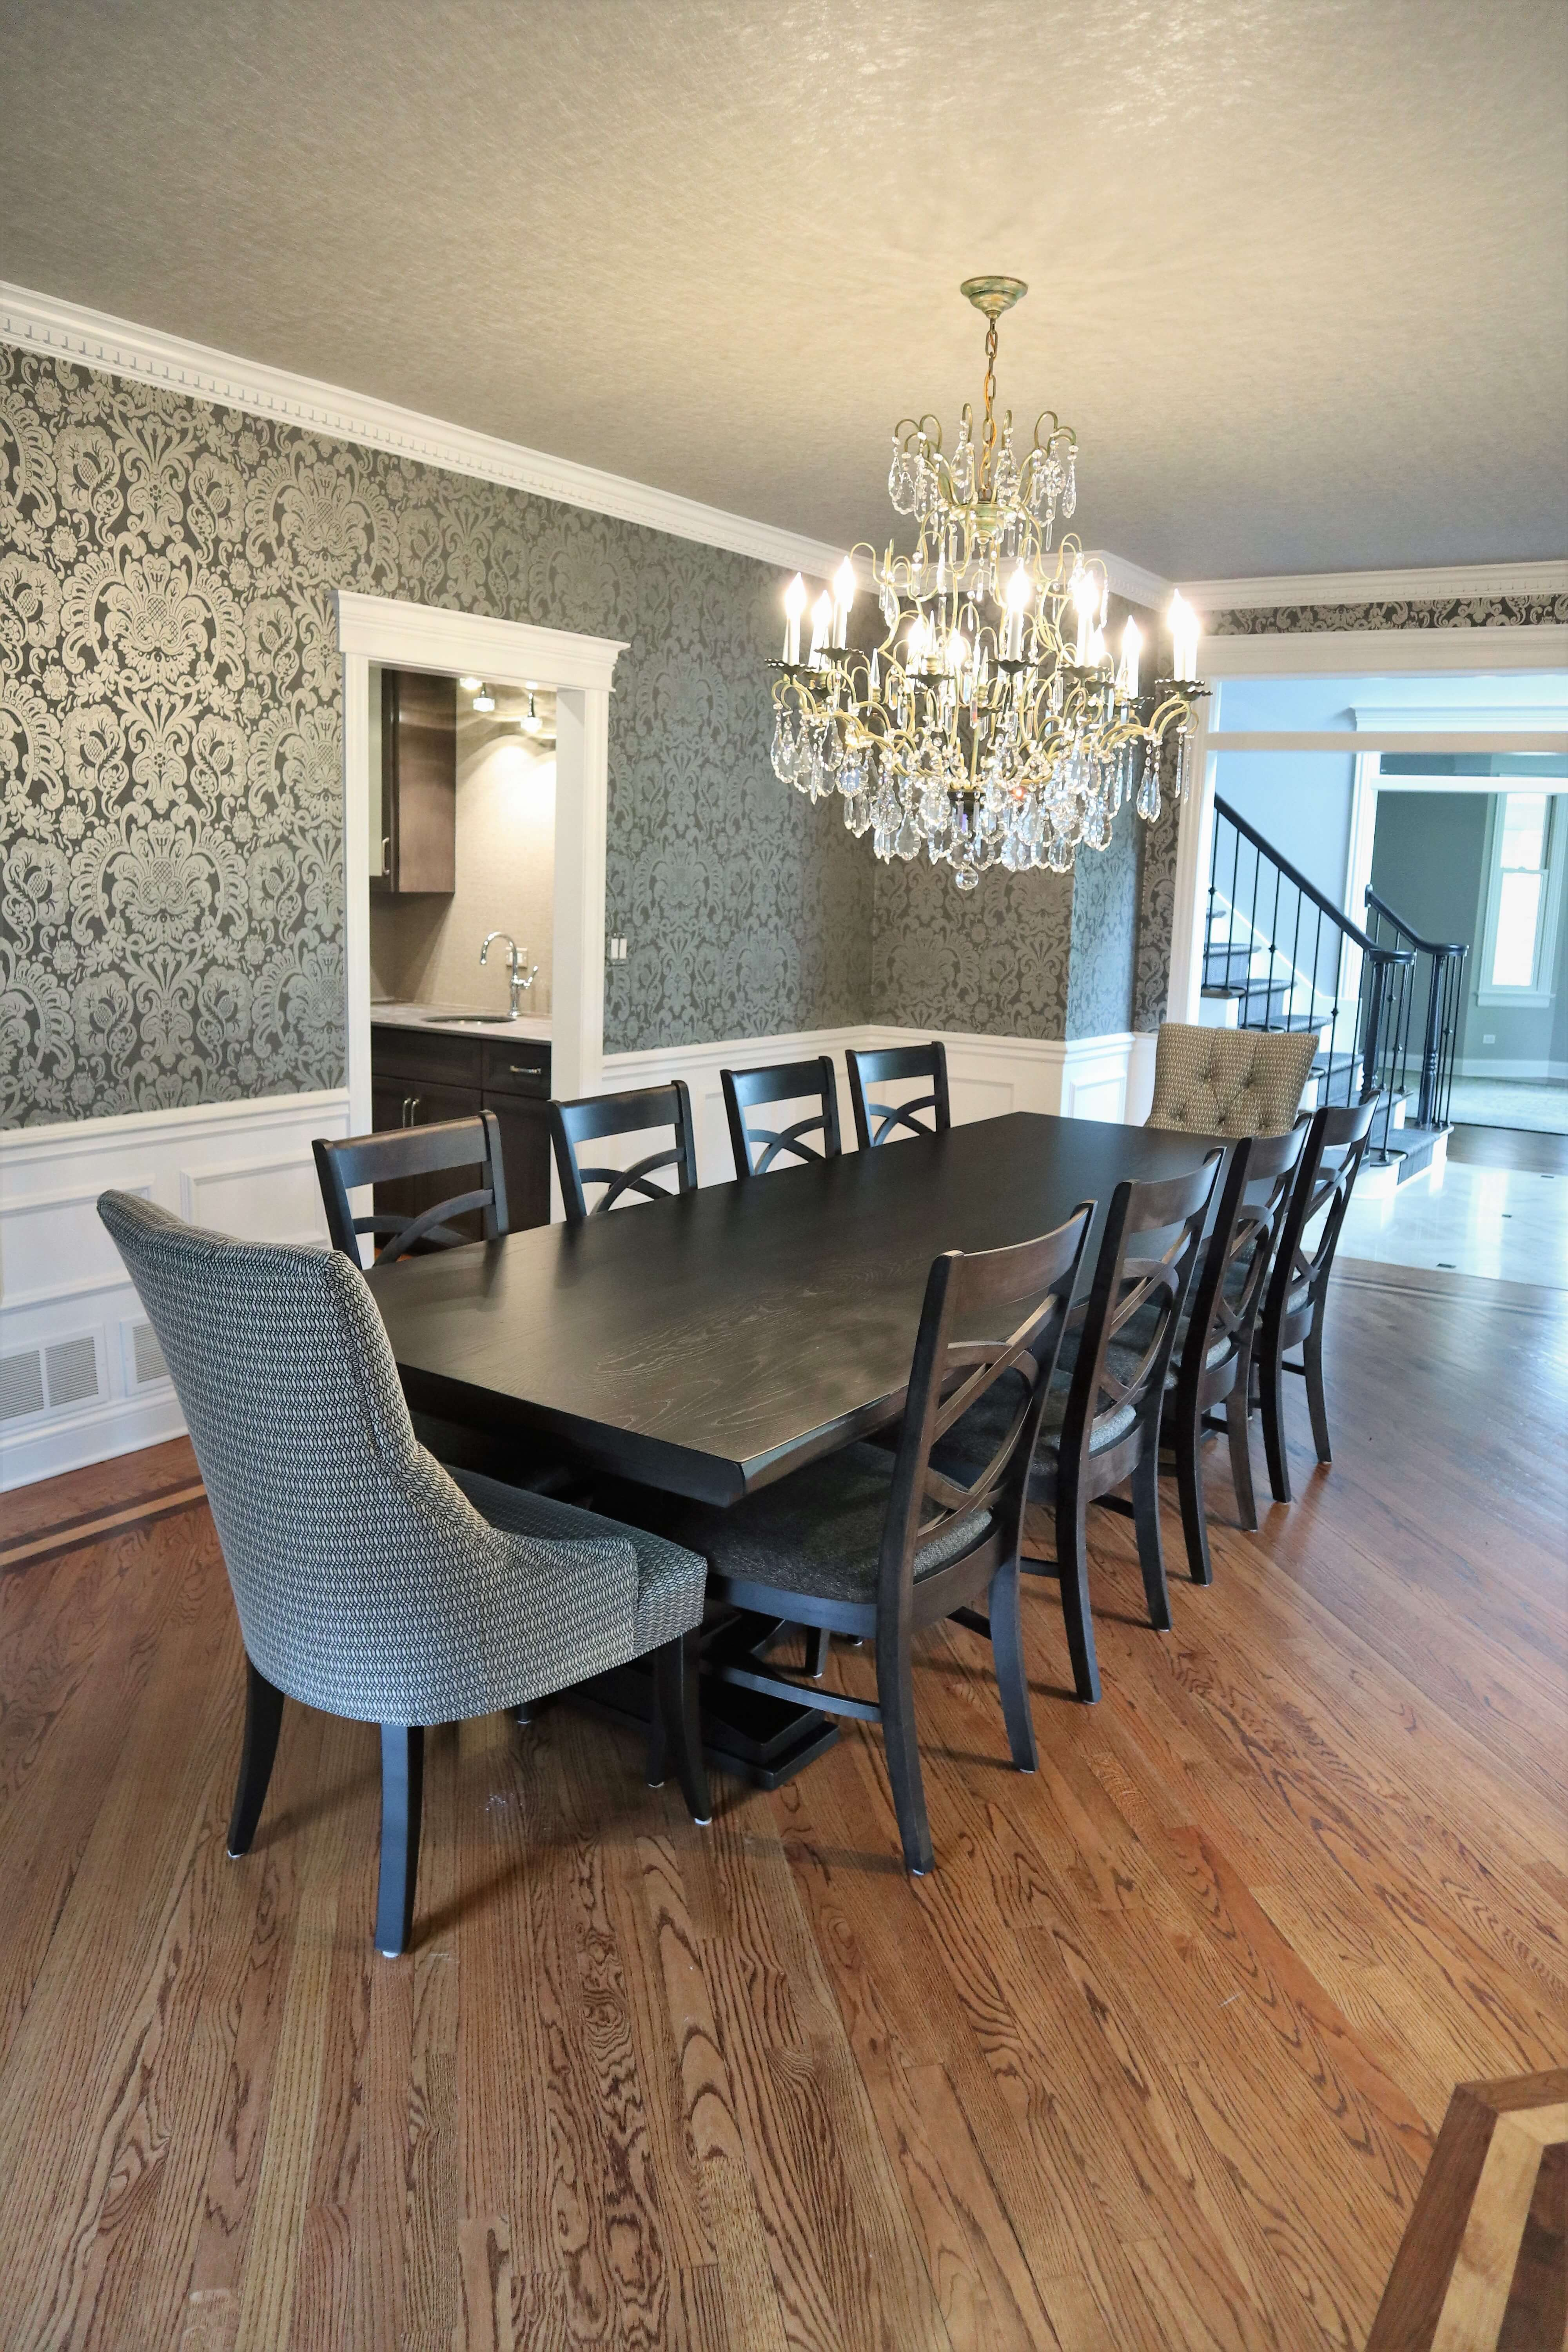 Black table rectangular tables with wood and fabric chairs.